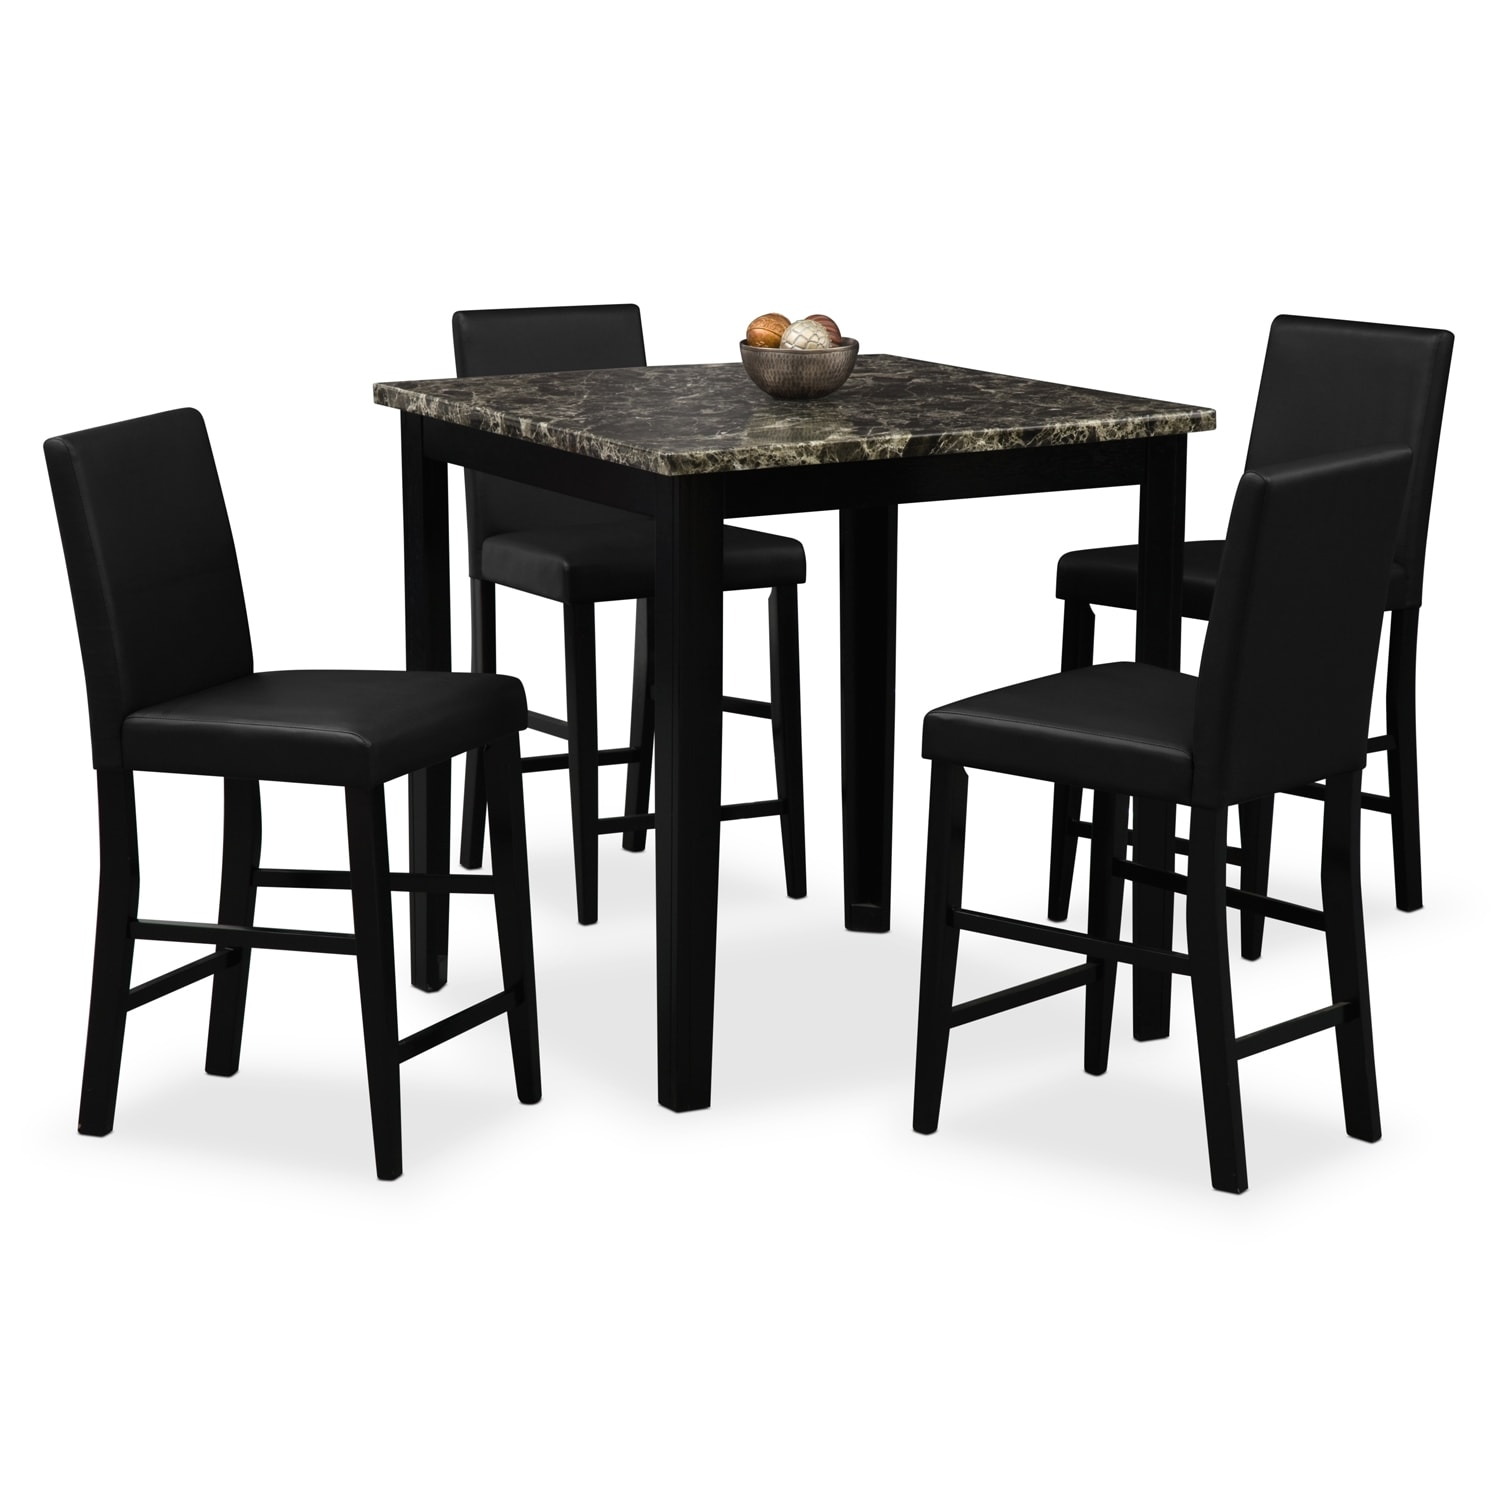 Shadow counter height table and 4 chairs black value for 4 dining room chairs